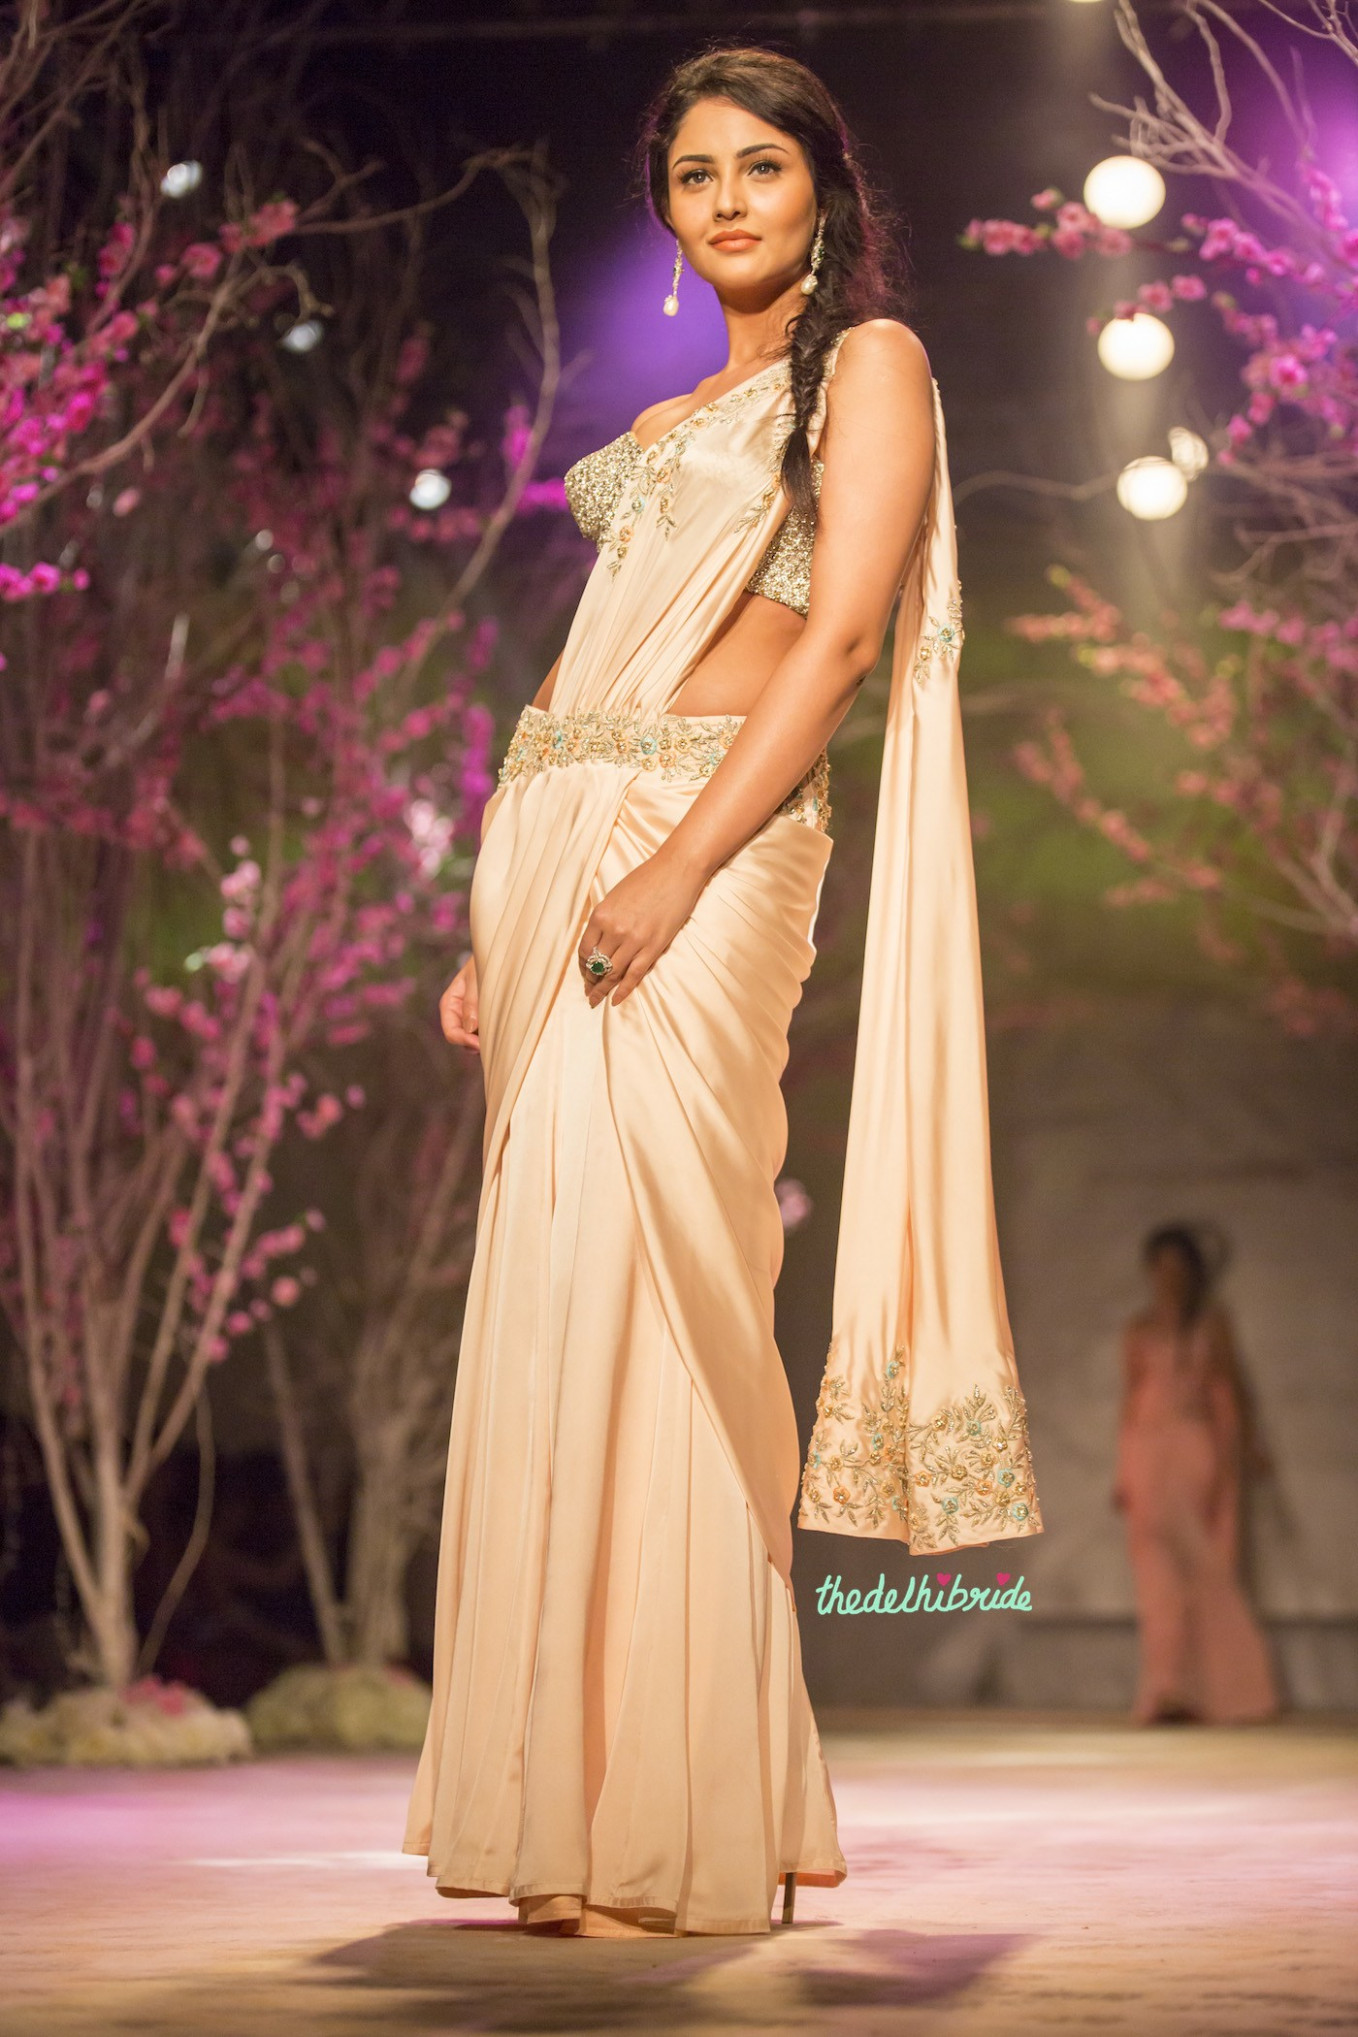 Jyotsna Tiwari at India Bridal Fashion Week 2014 – An ...